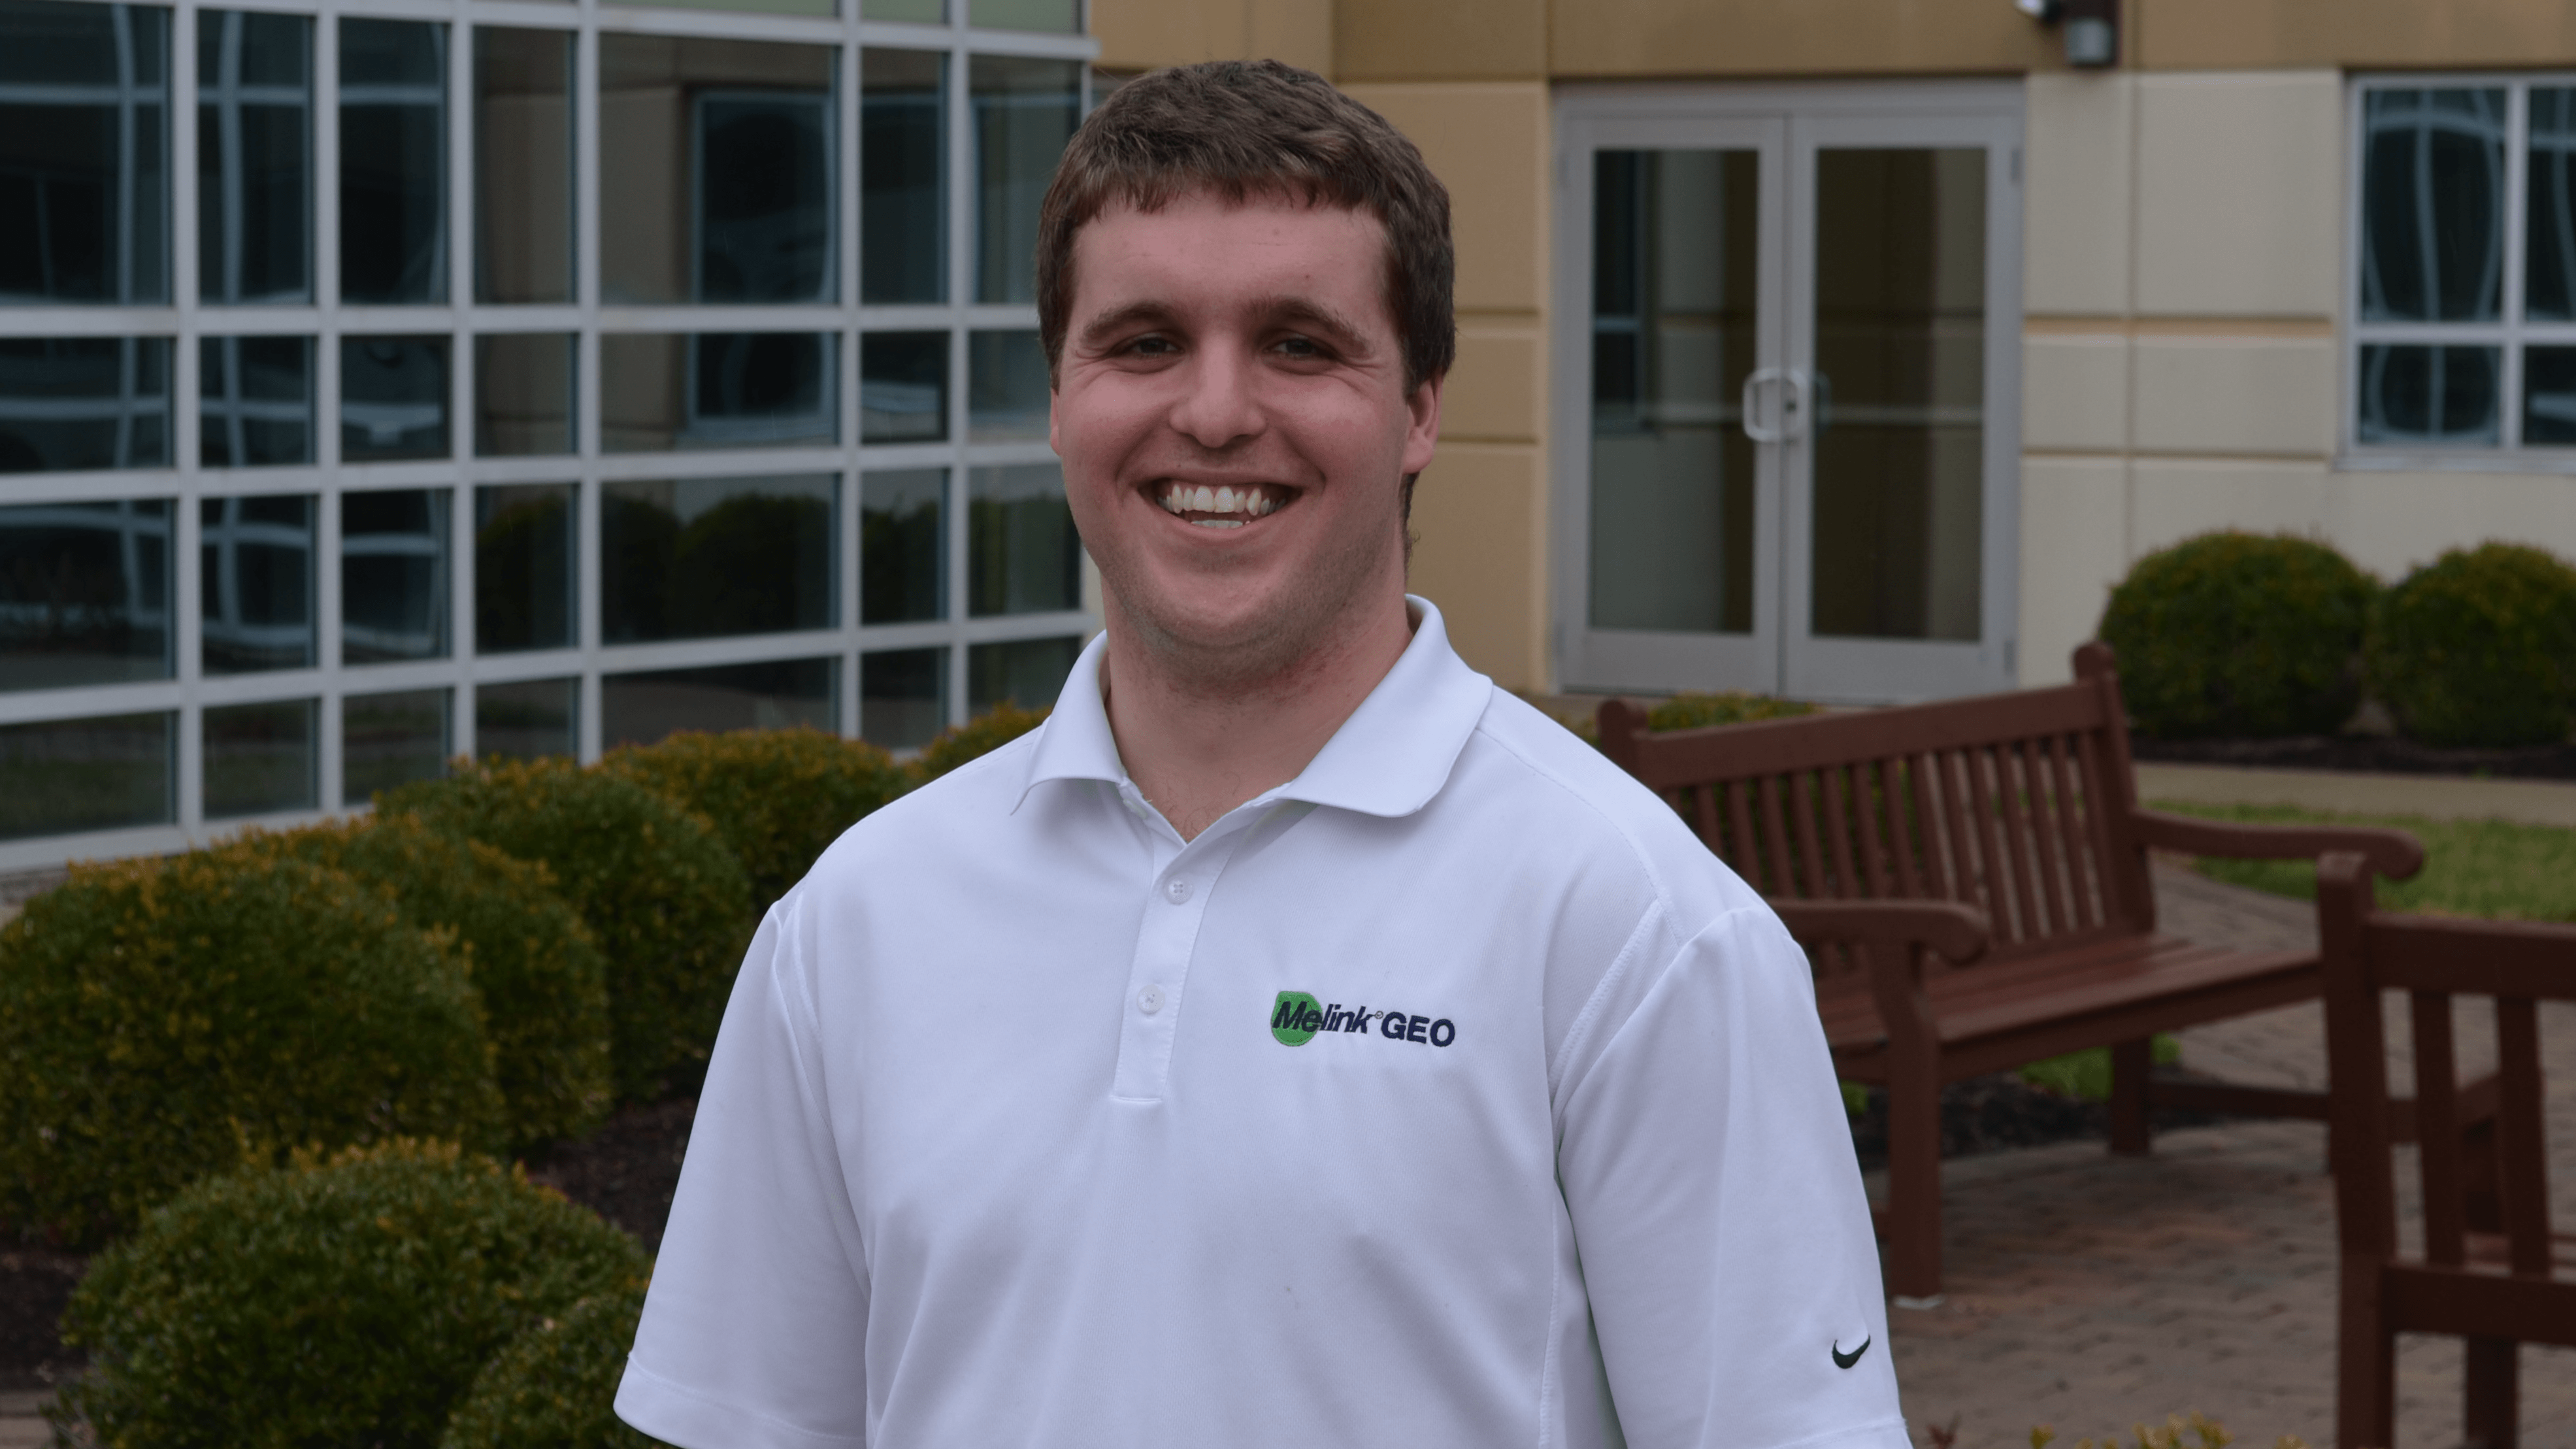 Meet Connor Donovan, Melink Geo Project Engineer